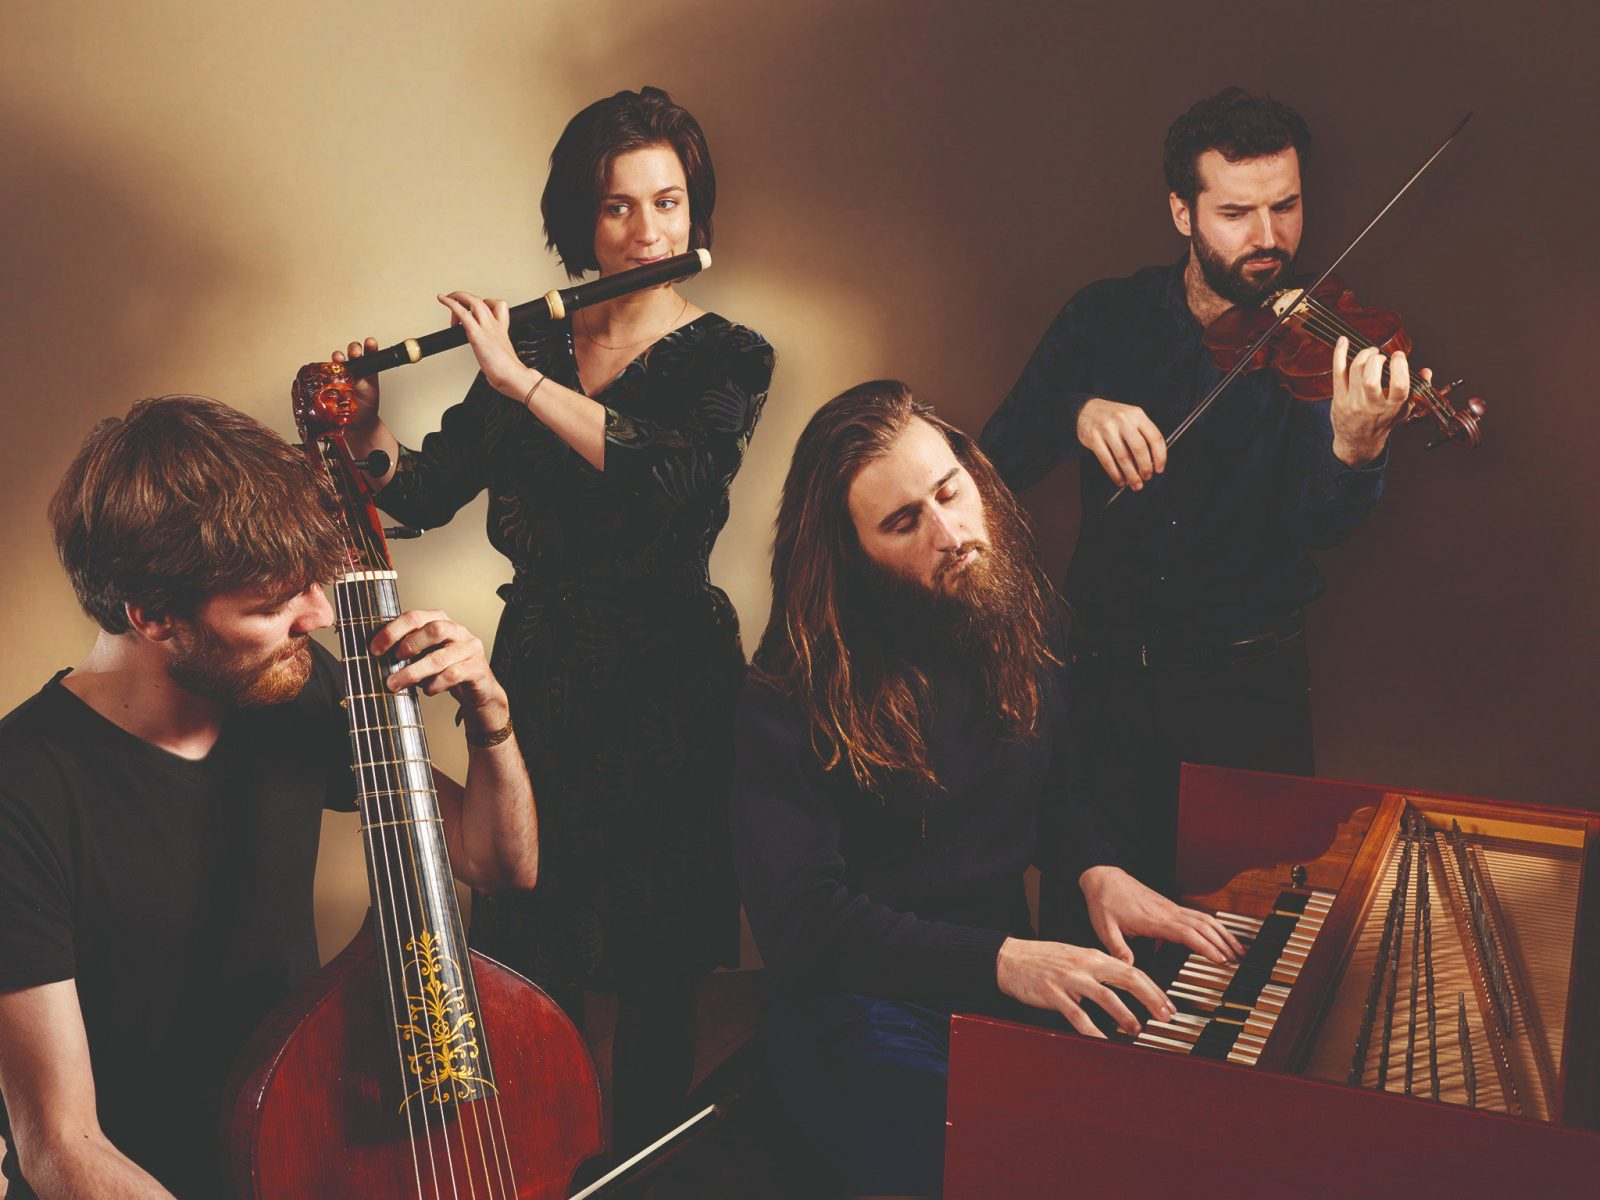 Four musicians play instruments from the renaissance and baroque era. Harpsichord, flute and strings